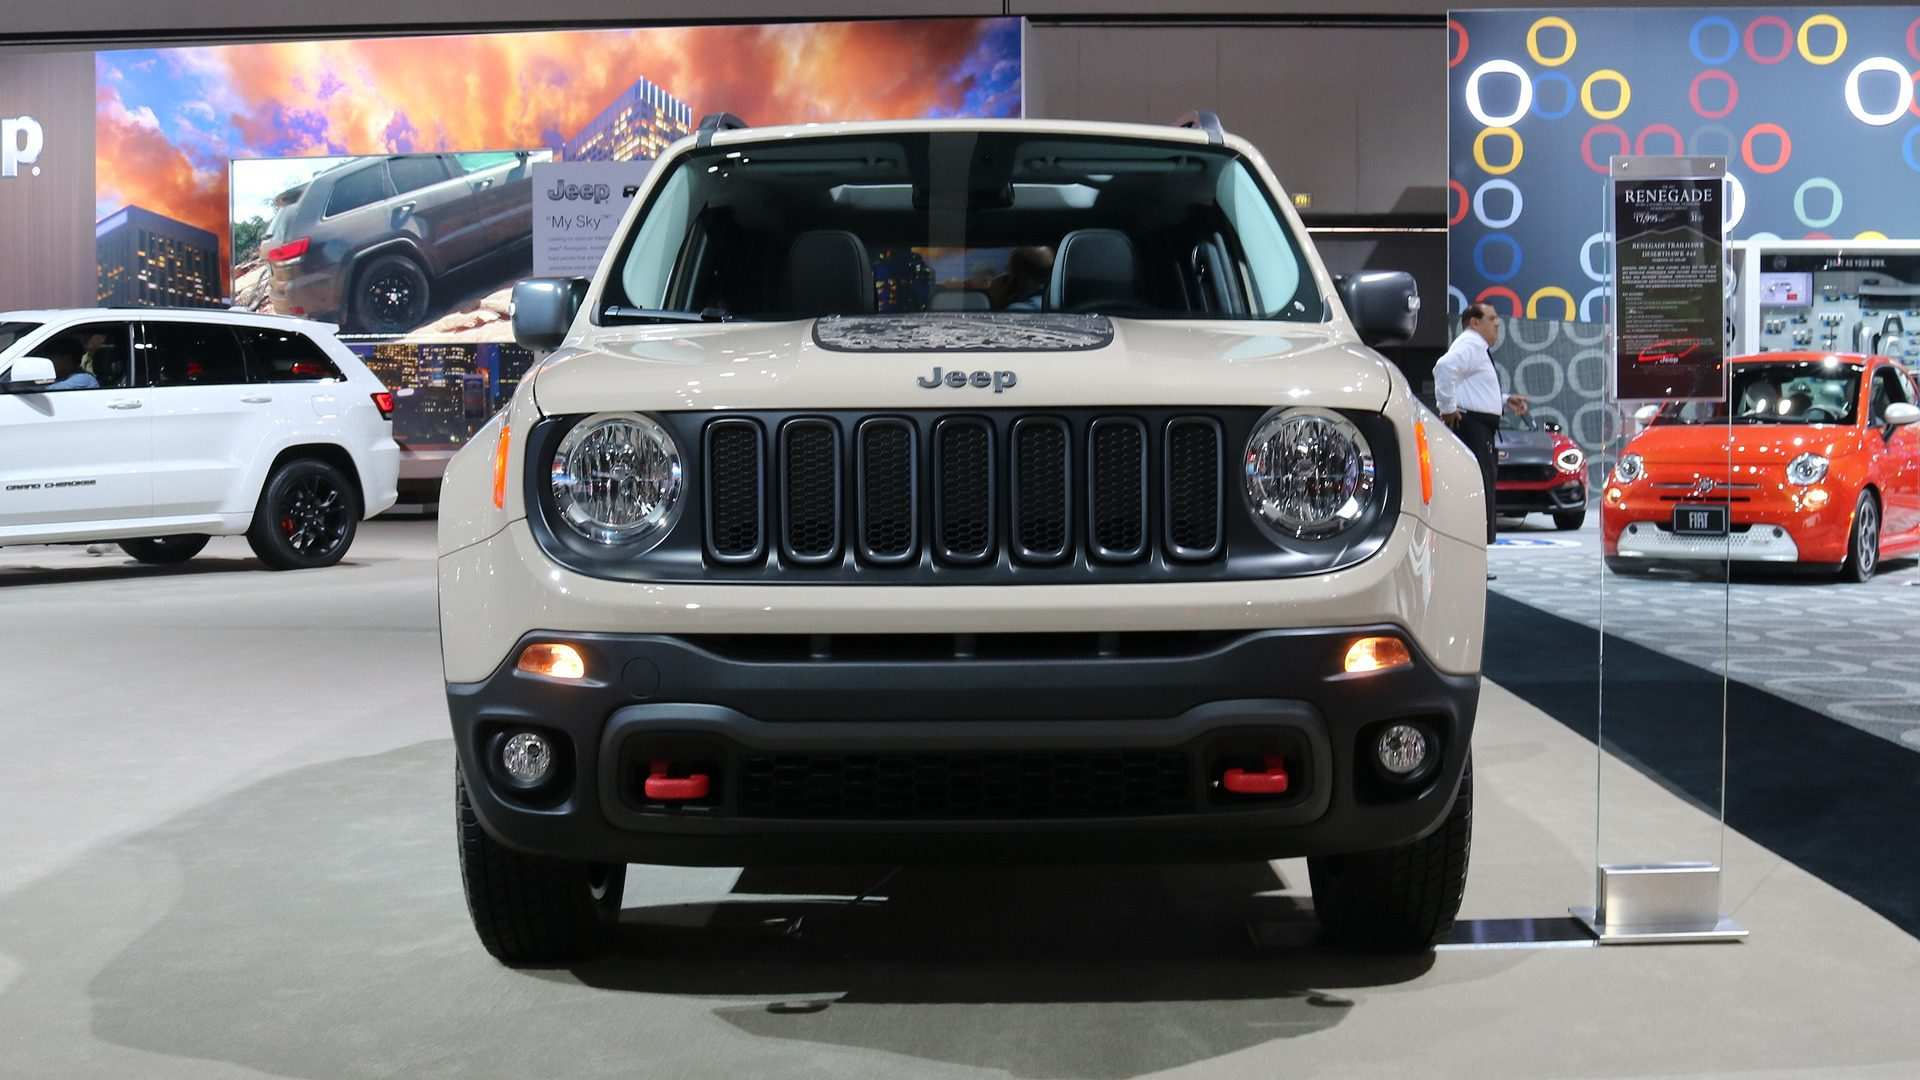 73 Concept of New Jeep 2019 Vehicles Spy Shoot Interior with New Jeep 2019 Vehicles Spy Shoot